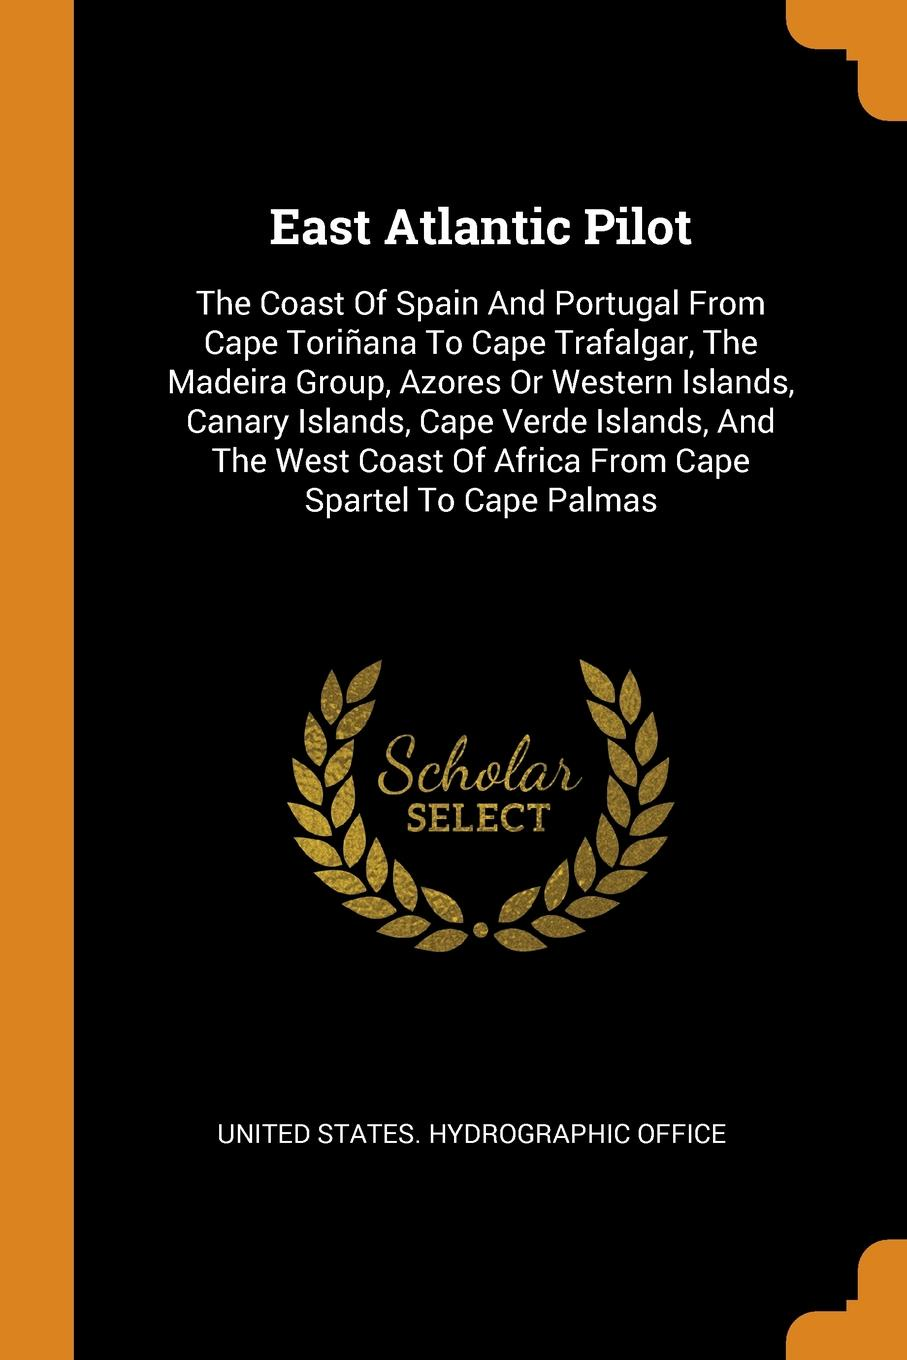 East Atlantic Pilot. The Coast Of Spain And Portugal From Cape Torinana To Cape Trafalgar, The Madeira Group, Azores Or Western Islands, Canary Islands, Cape Verde Islands, And The West Coast Of Africa From Cape Spartel To Cape Palmas ghana departm university of cape coast journal of integrative humanism vol 5 no 1